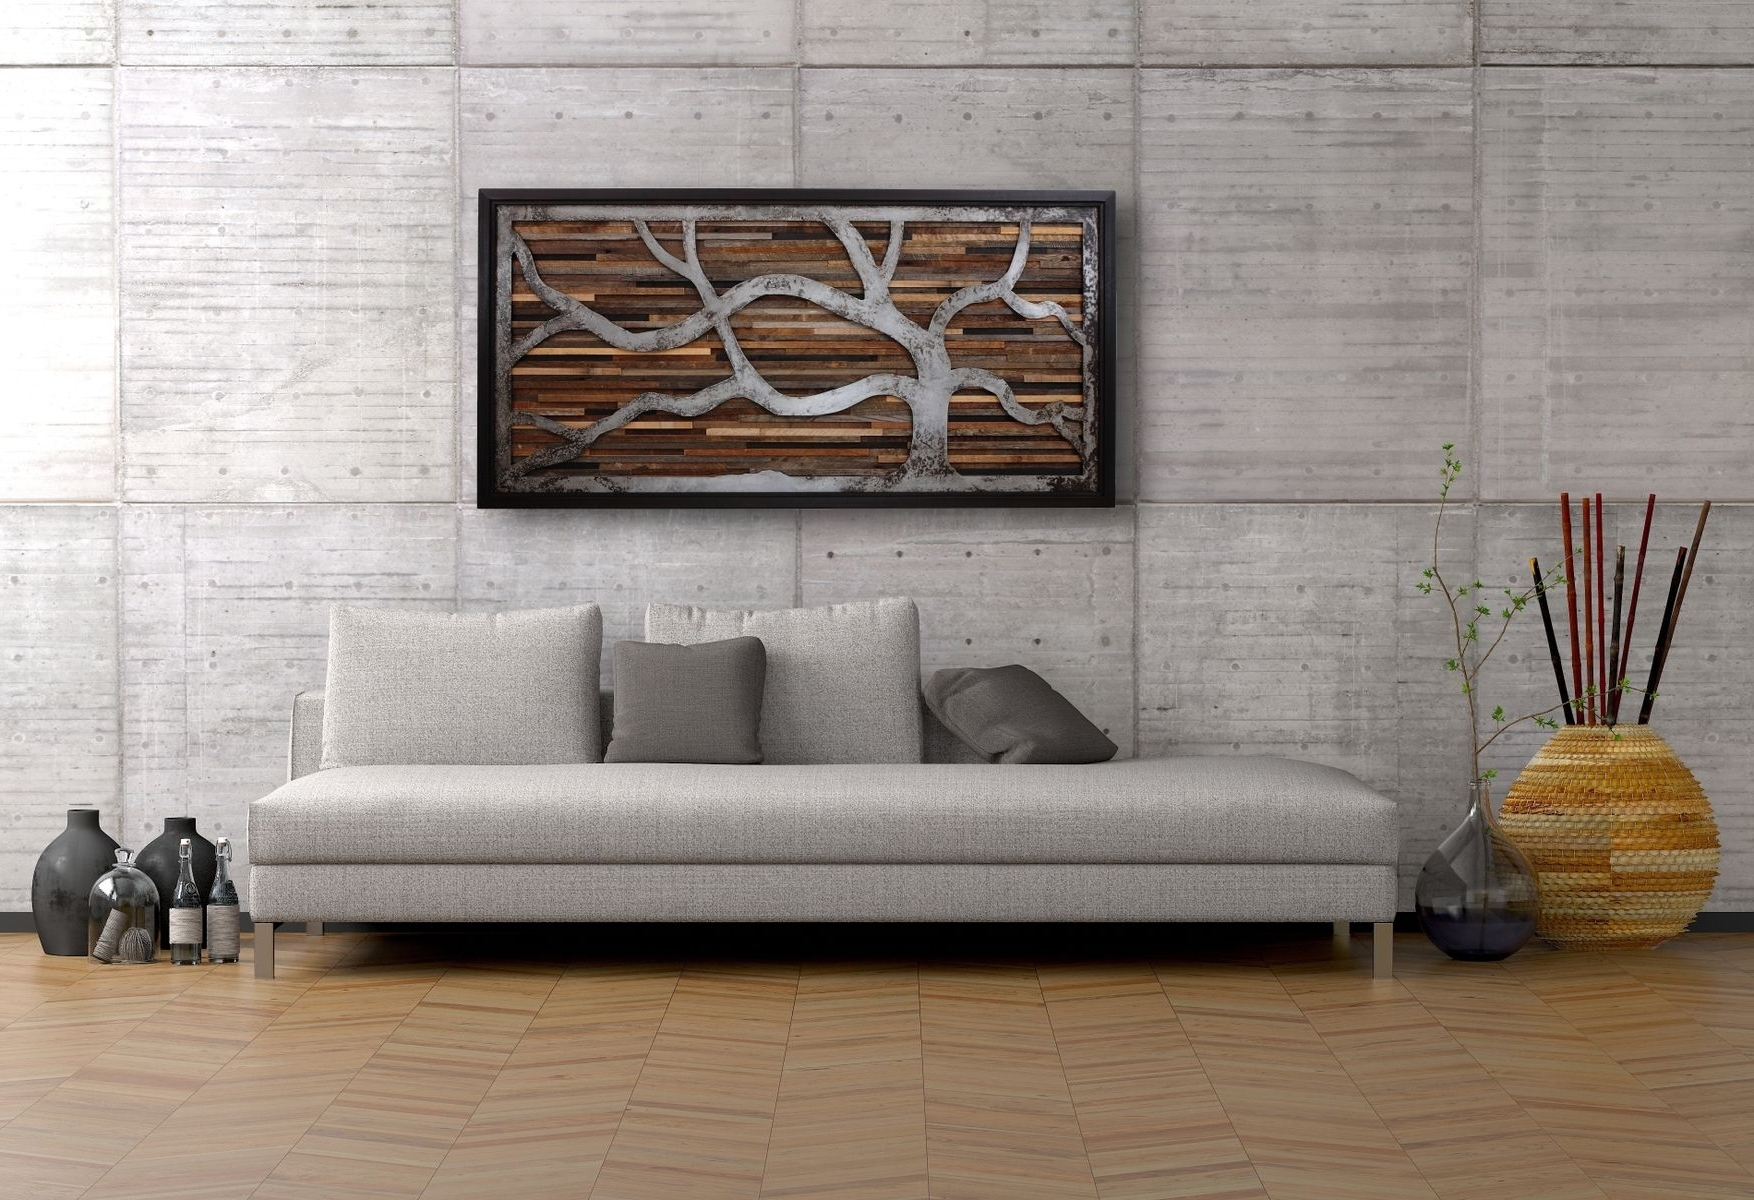 Handmade Reclaimed Wood Wall Art Made Of Old Barnwood And Rustic With Regard To Most Popular Wood Art Wall (Gallery 8 of 15)